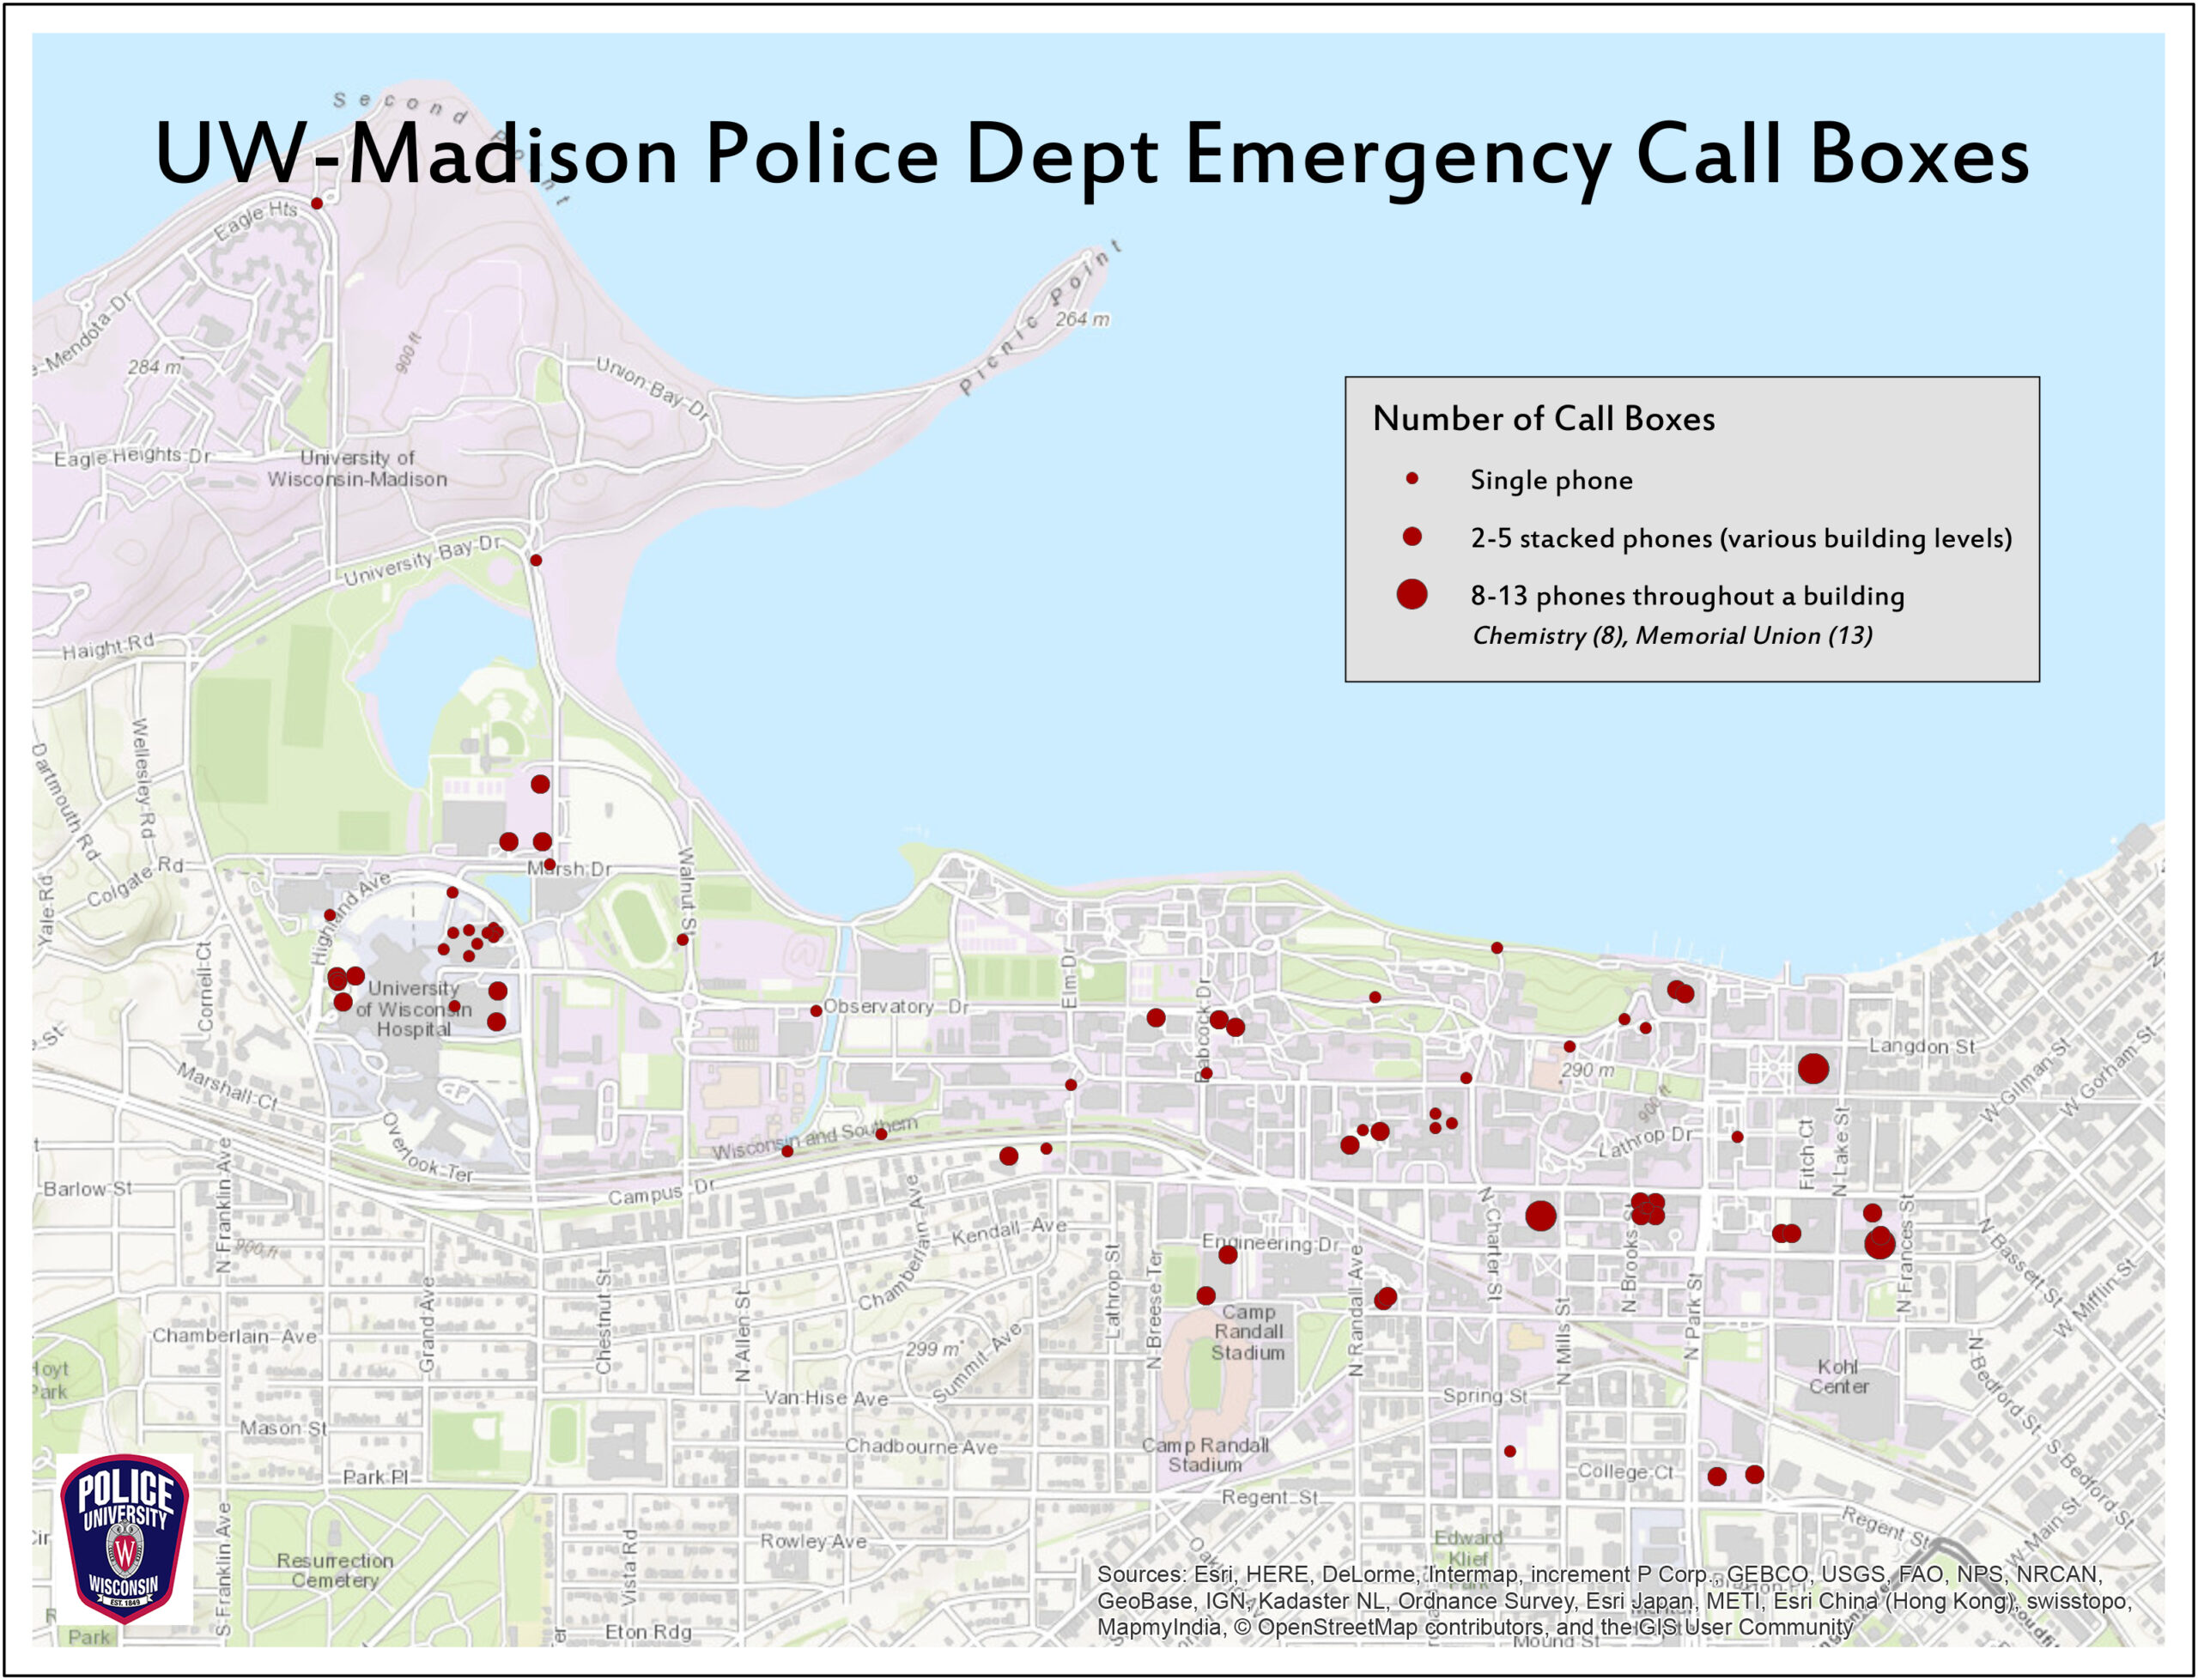 map of emergency call boxes on campus